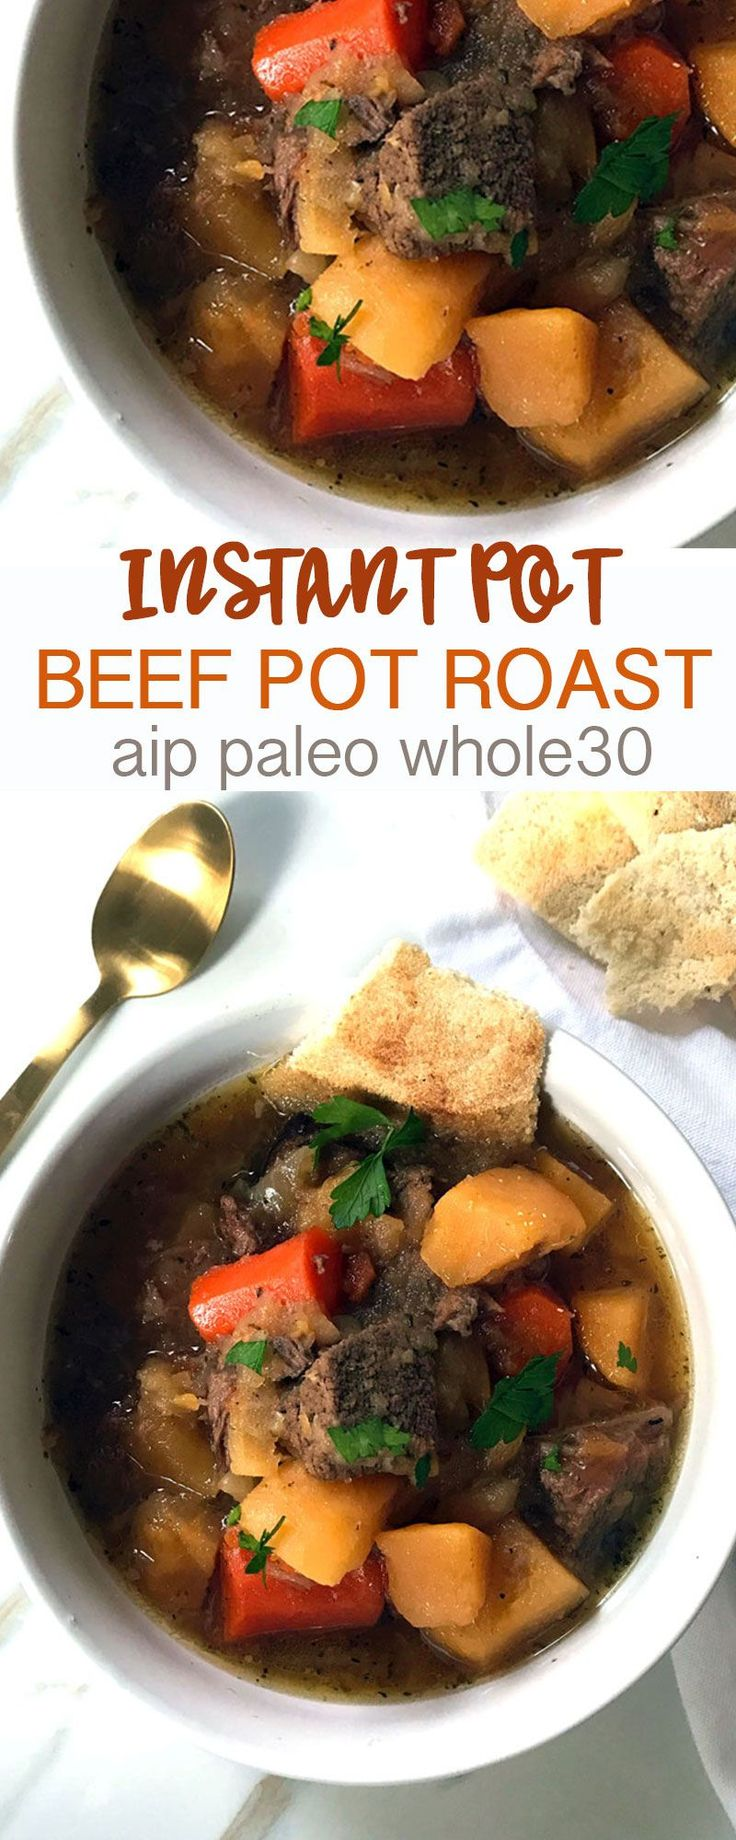 Pressure Cooker Pot Roast in 1 hour! (Paleo, AIP, Whole30) | Grazed & Enthused